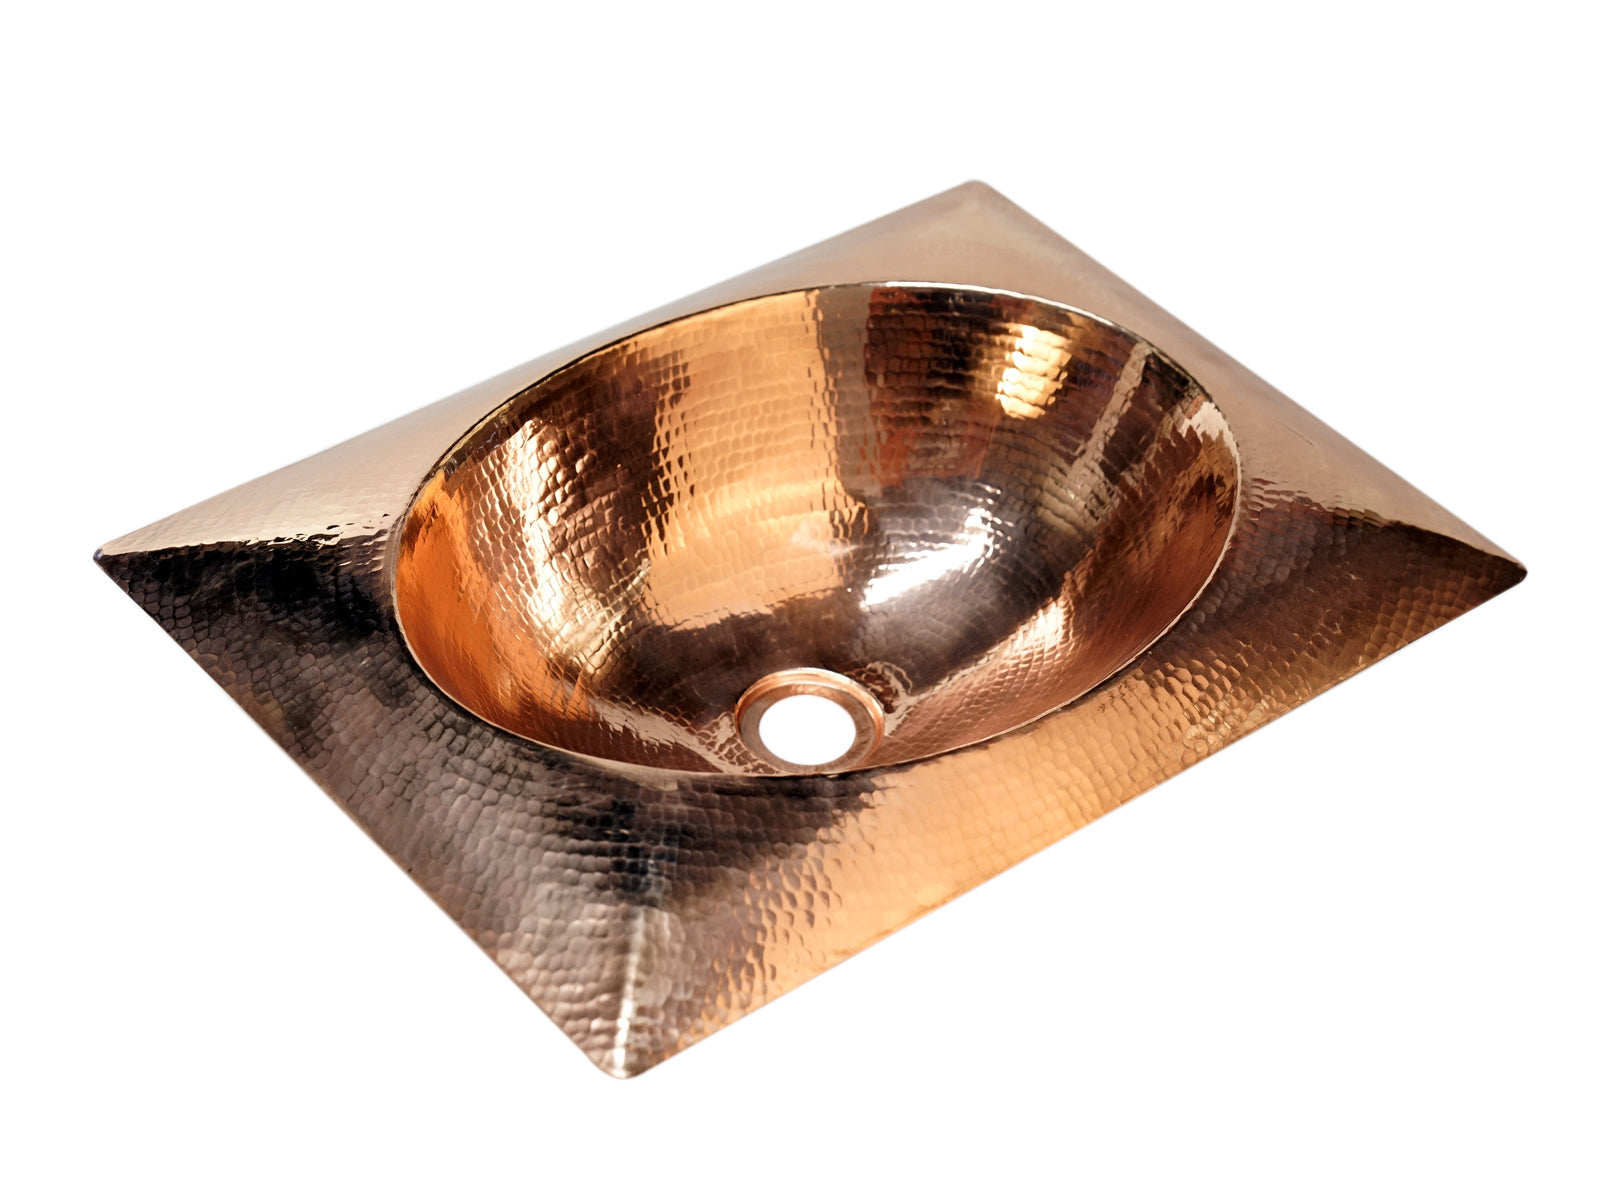 Copper Sink Cushion Design